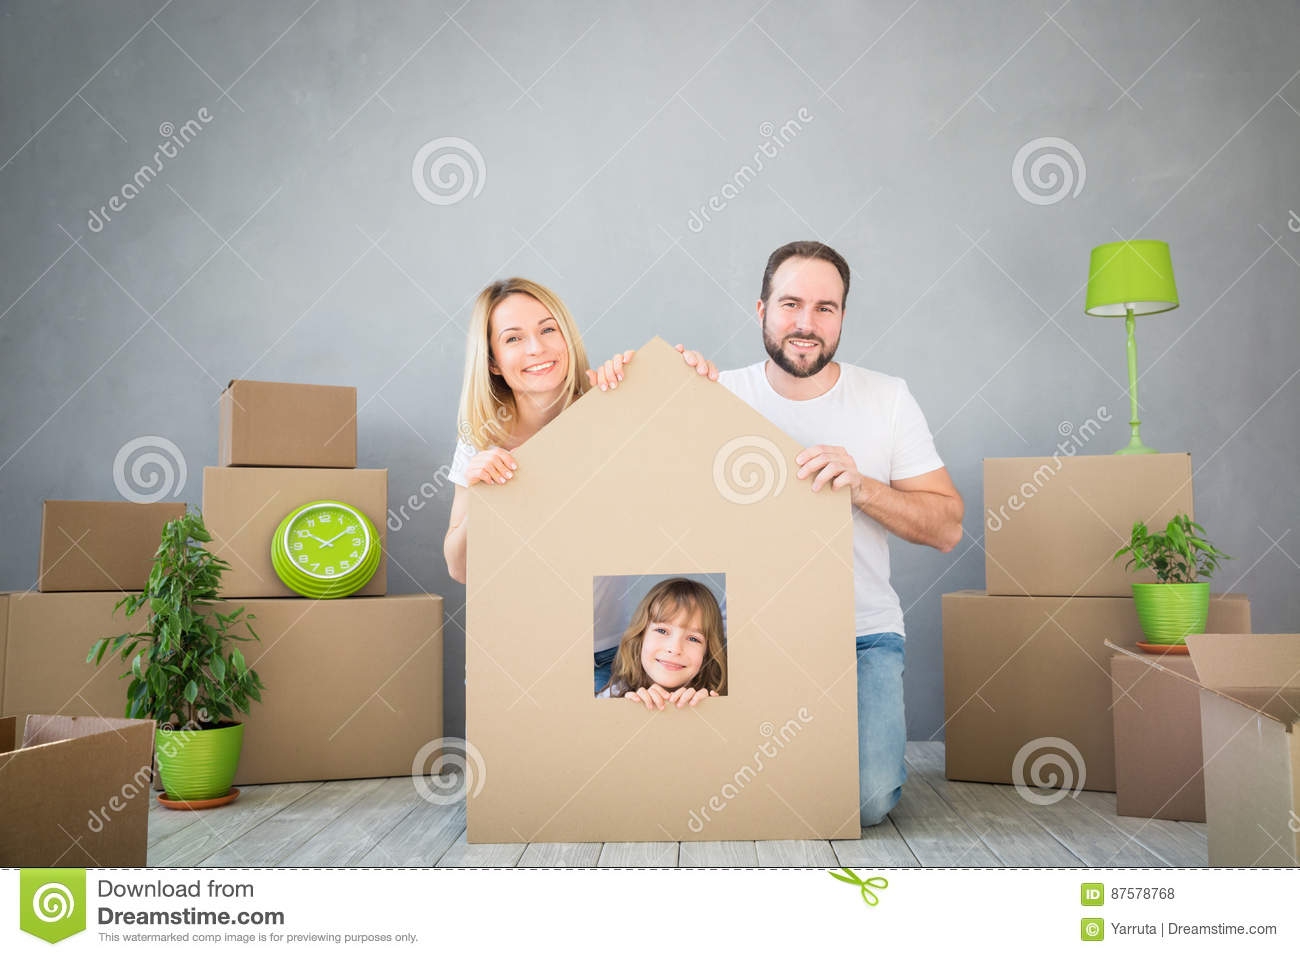 Download Family New Home Moving Day House Concept Stock Photo - Image of lifestyle, cardboard: 87578768